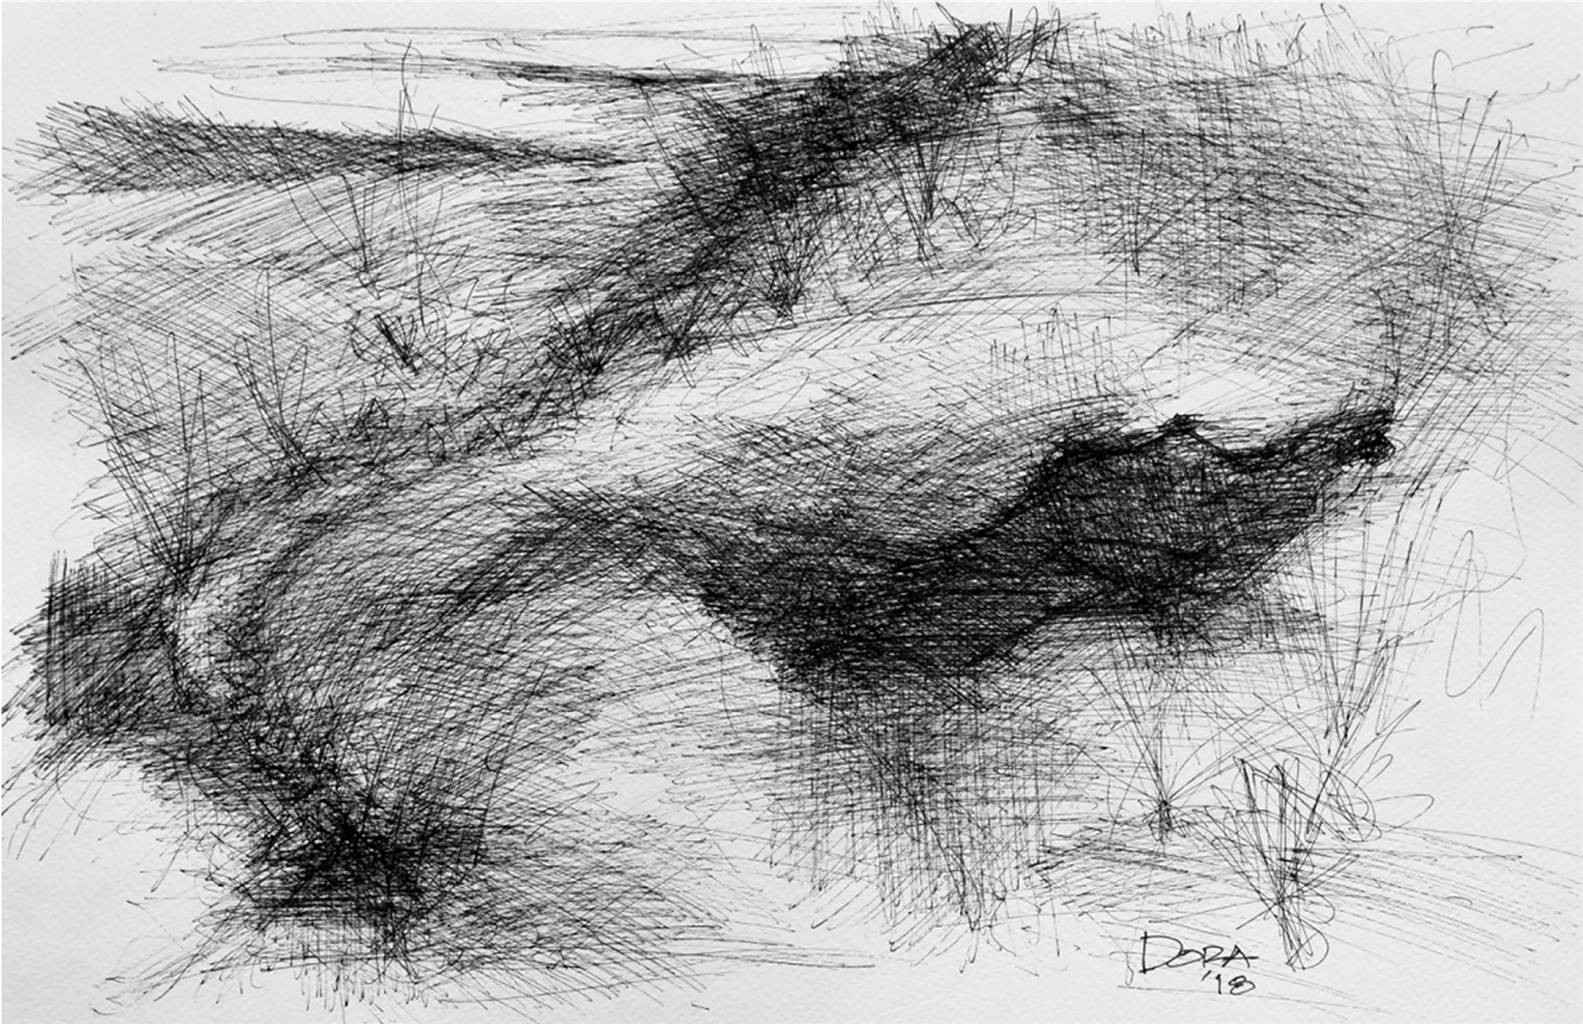 Vasant dora landscape abstract 2 pen and ink on paper drawings